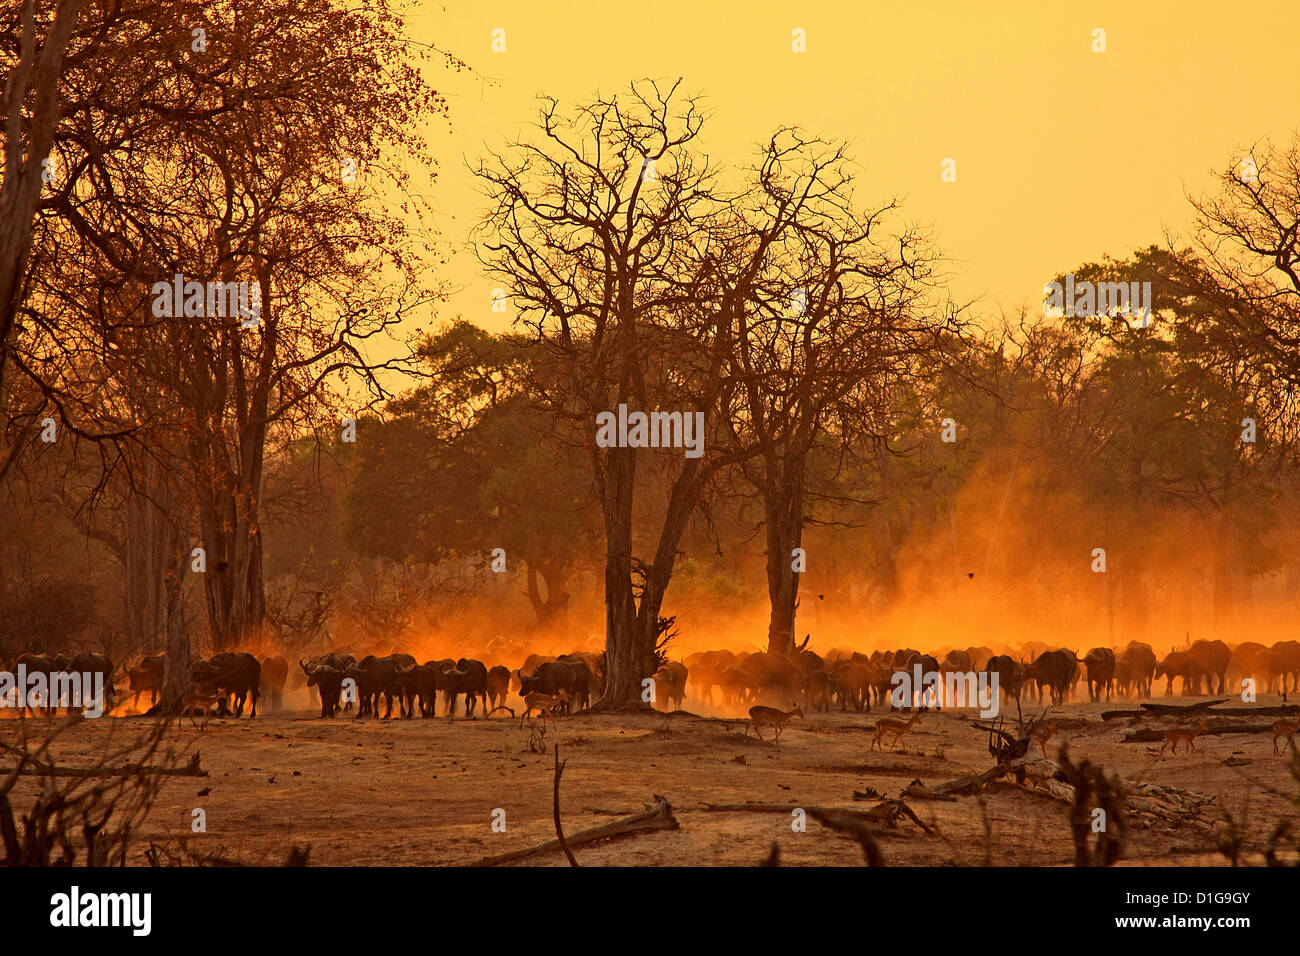 A herd of buffalo in the early morning sunrise - Stock Image